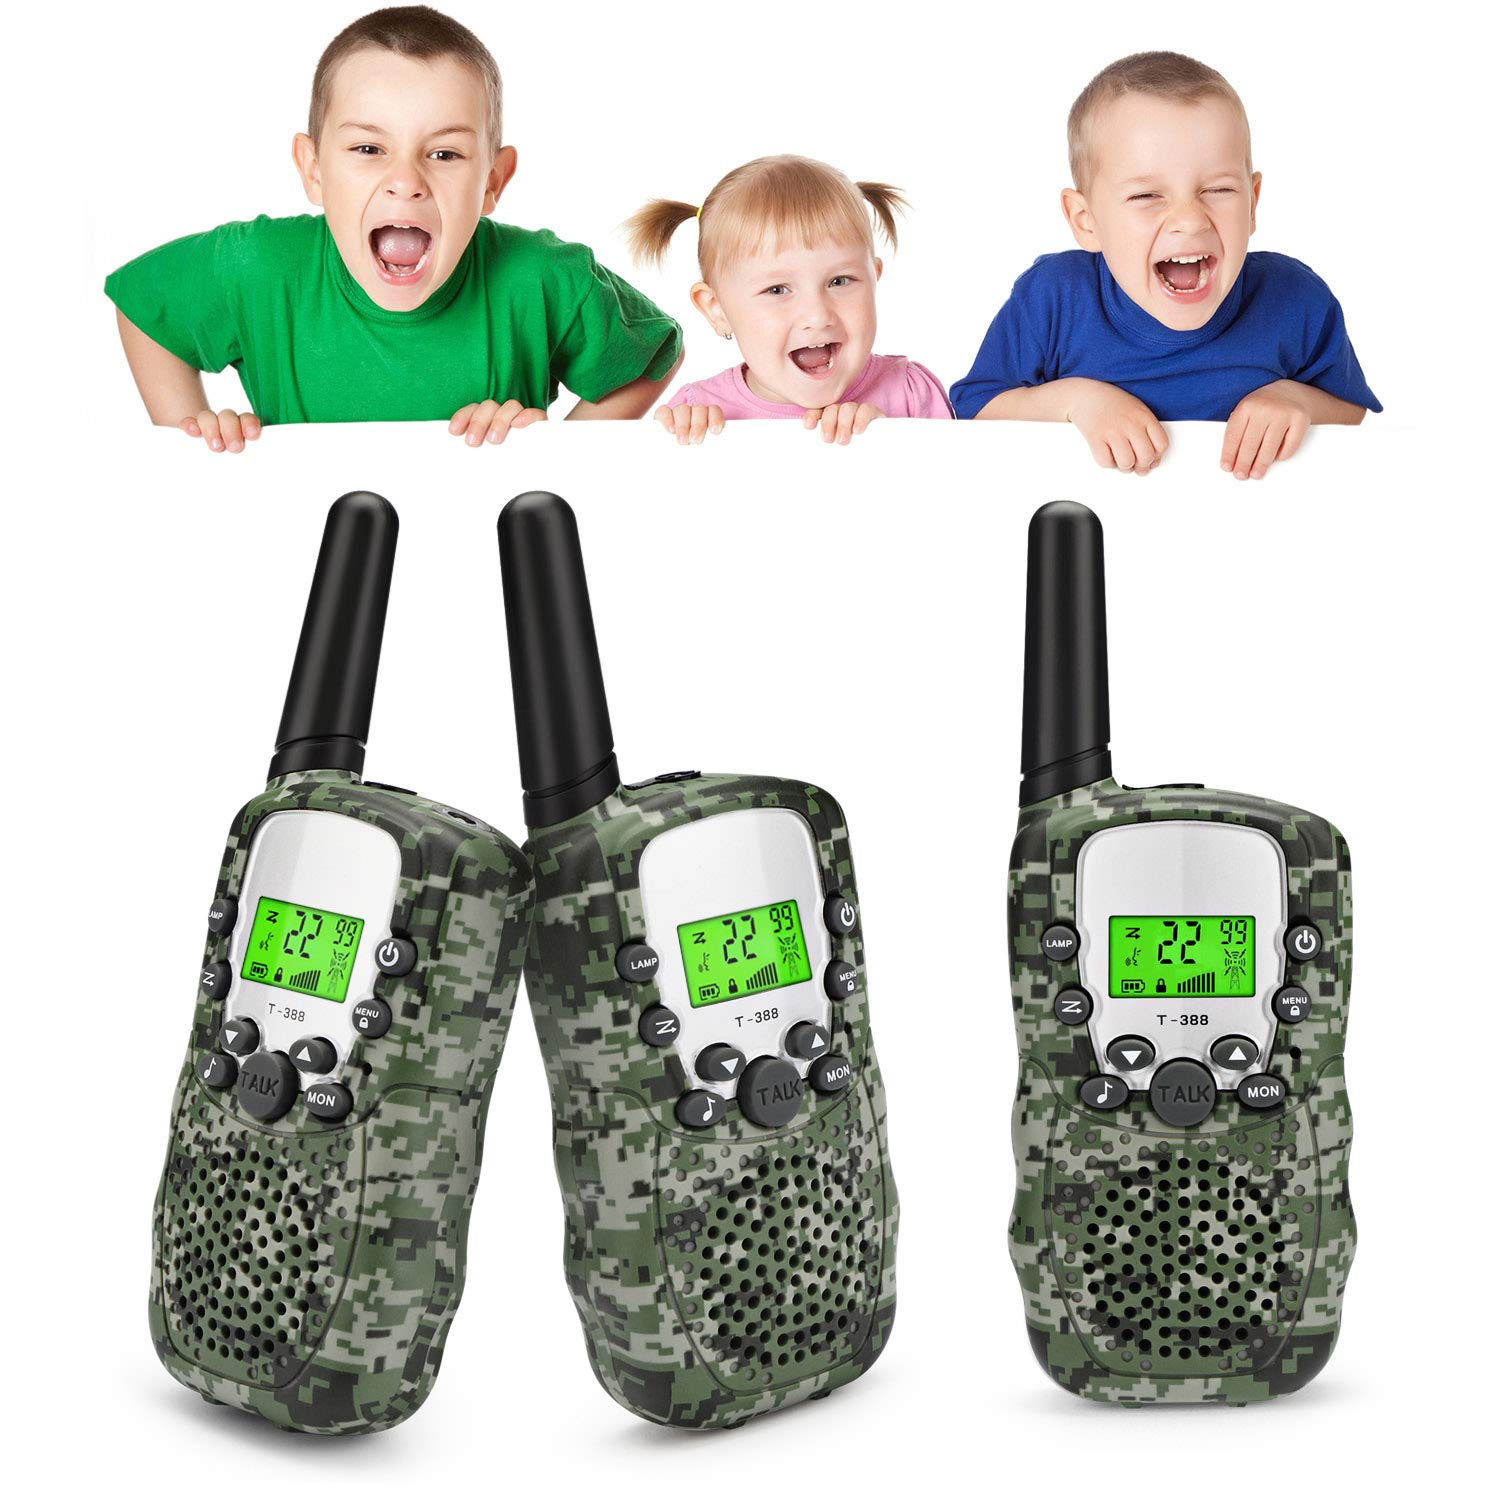 Zhenhao Walkie Talkies for Kids 3 Packs - 22 Channels Two Way Radio 3 Miles Long Range Outdoor Toys with 3 Earpieces and 3 Lanyards for Boys Girls by Zhenhao (Image #1)